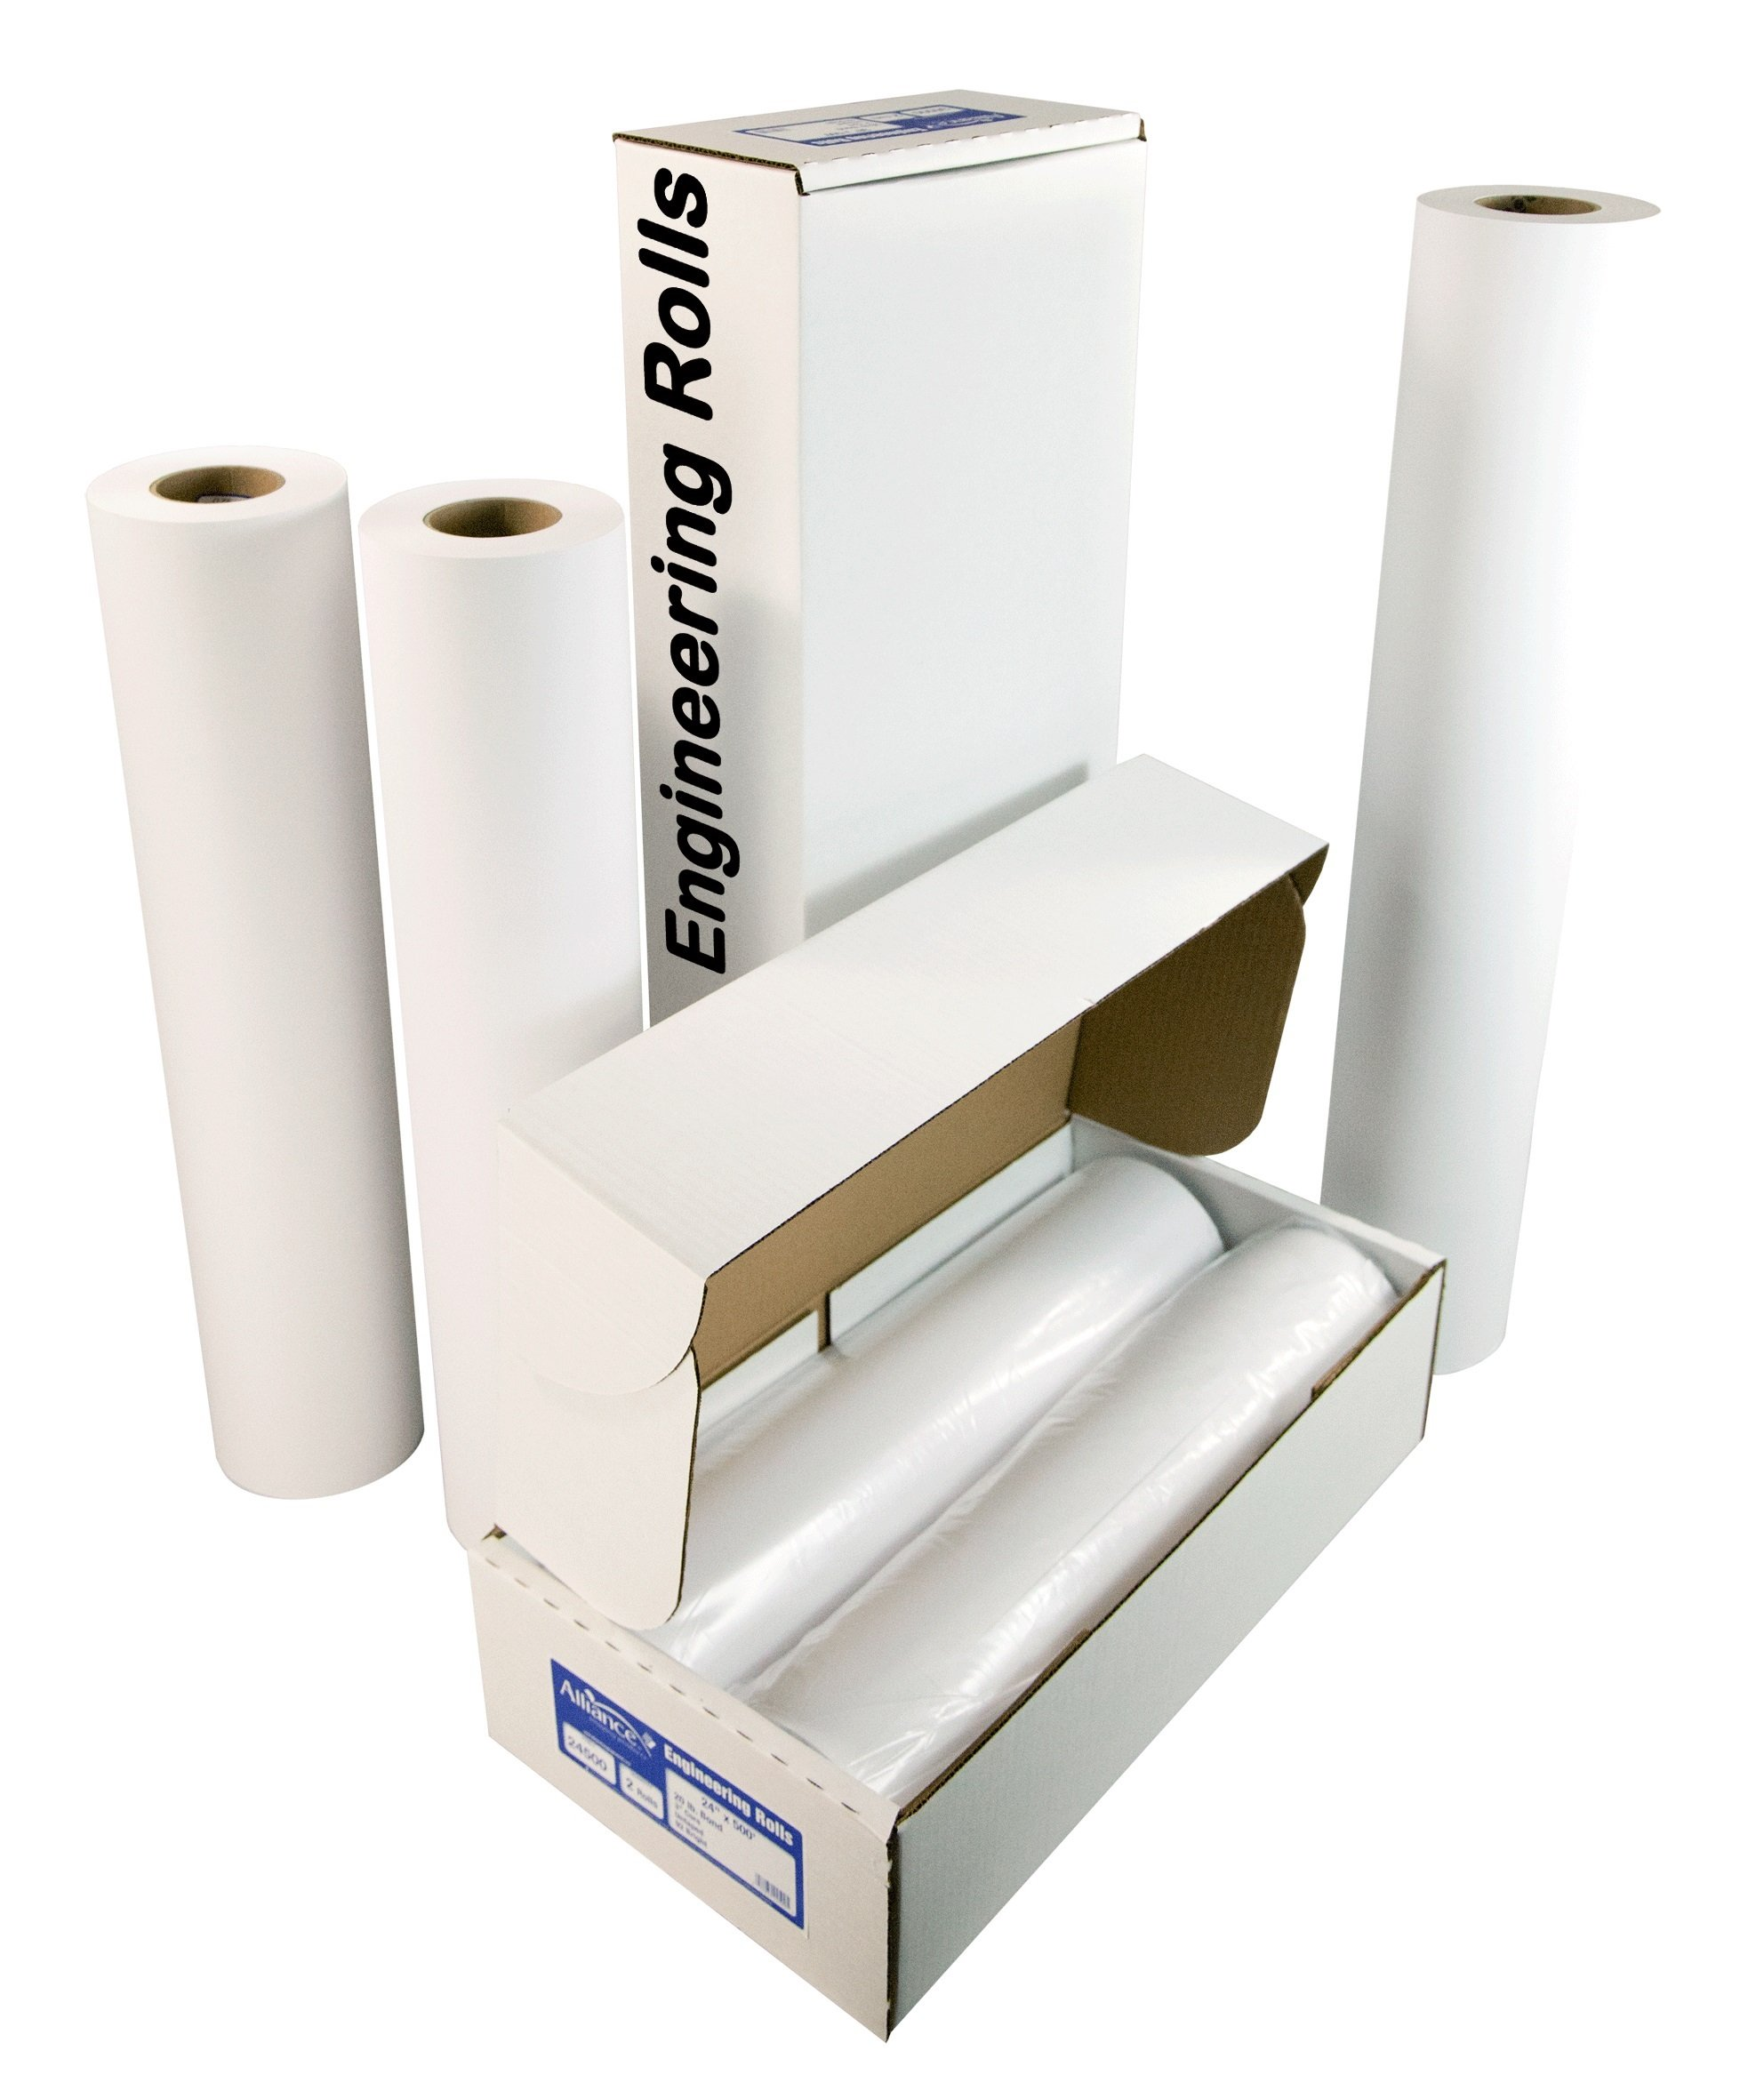 Alliance Engineering Roll Paper - 36'' x 500' 20lb. Bond, 92 Bright Untaped. 35 Cartons/Pallet - 70 Rolls Total